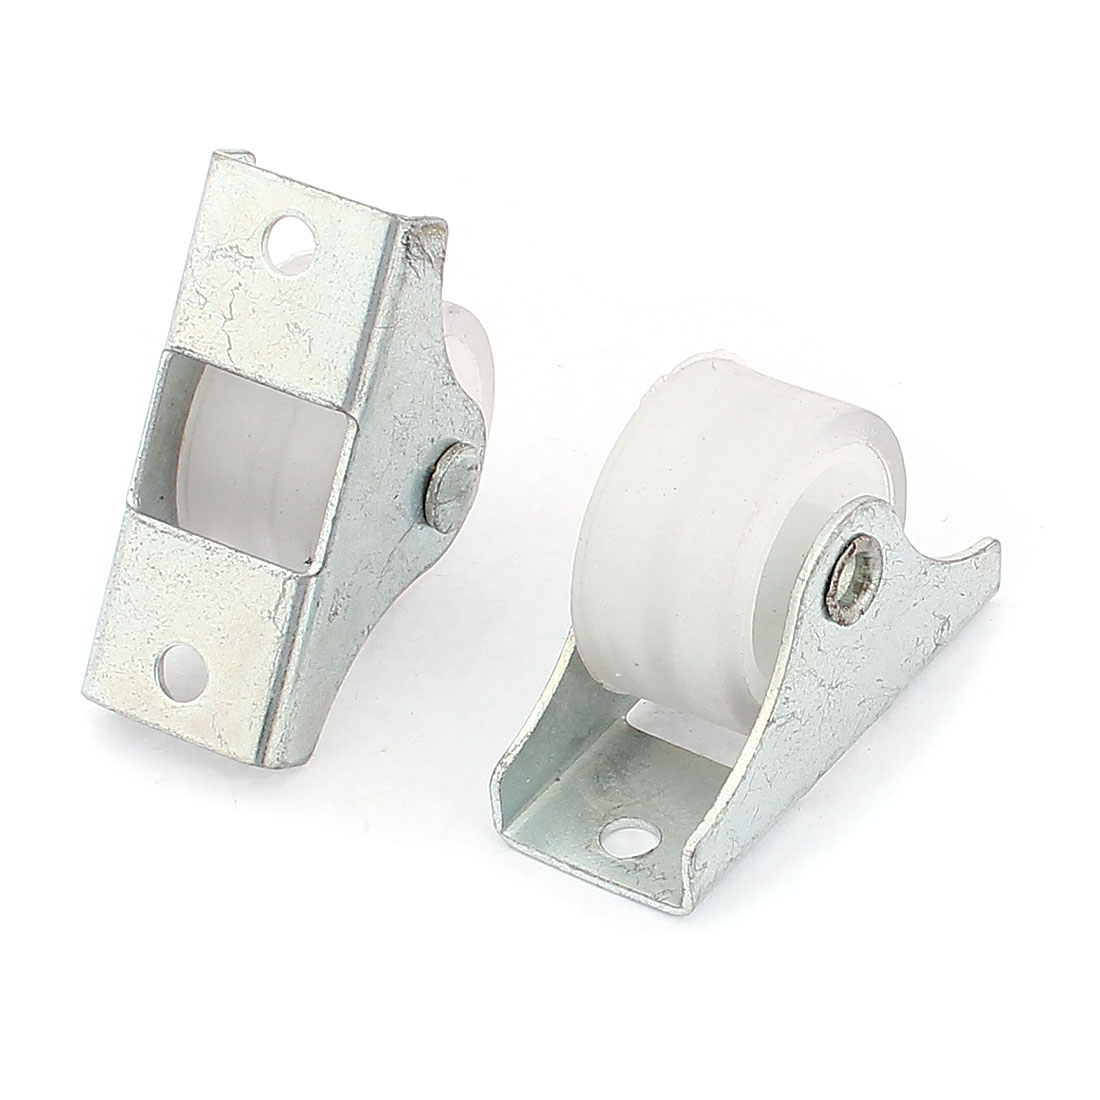 Nylon 25mm Dia Single Wheel Sliding Roller Window Pulley White 2pcs